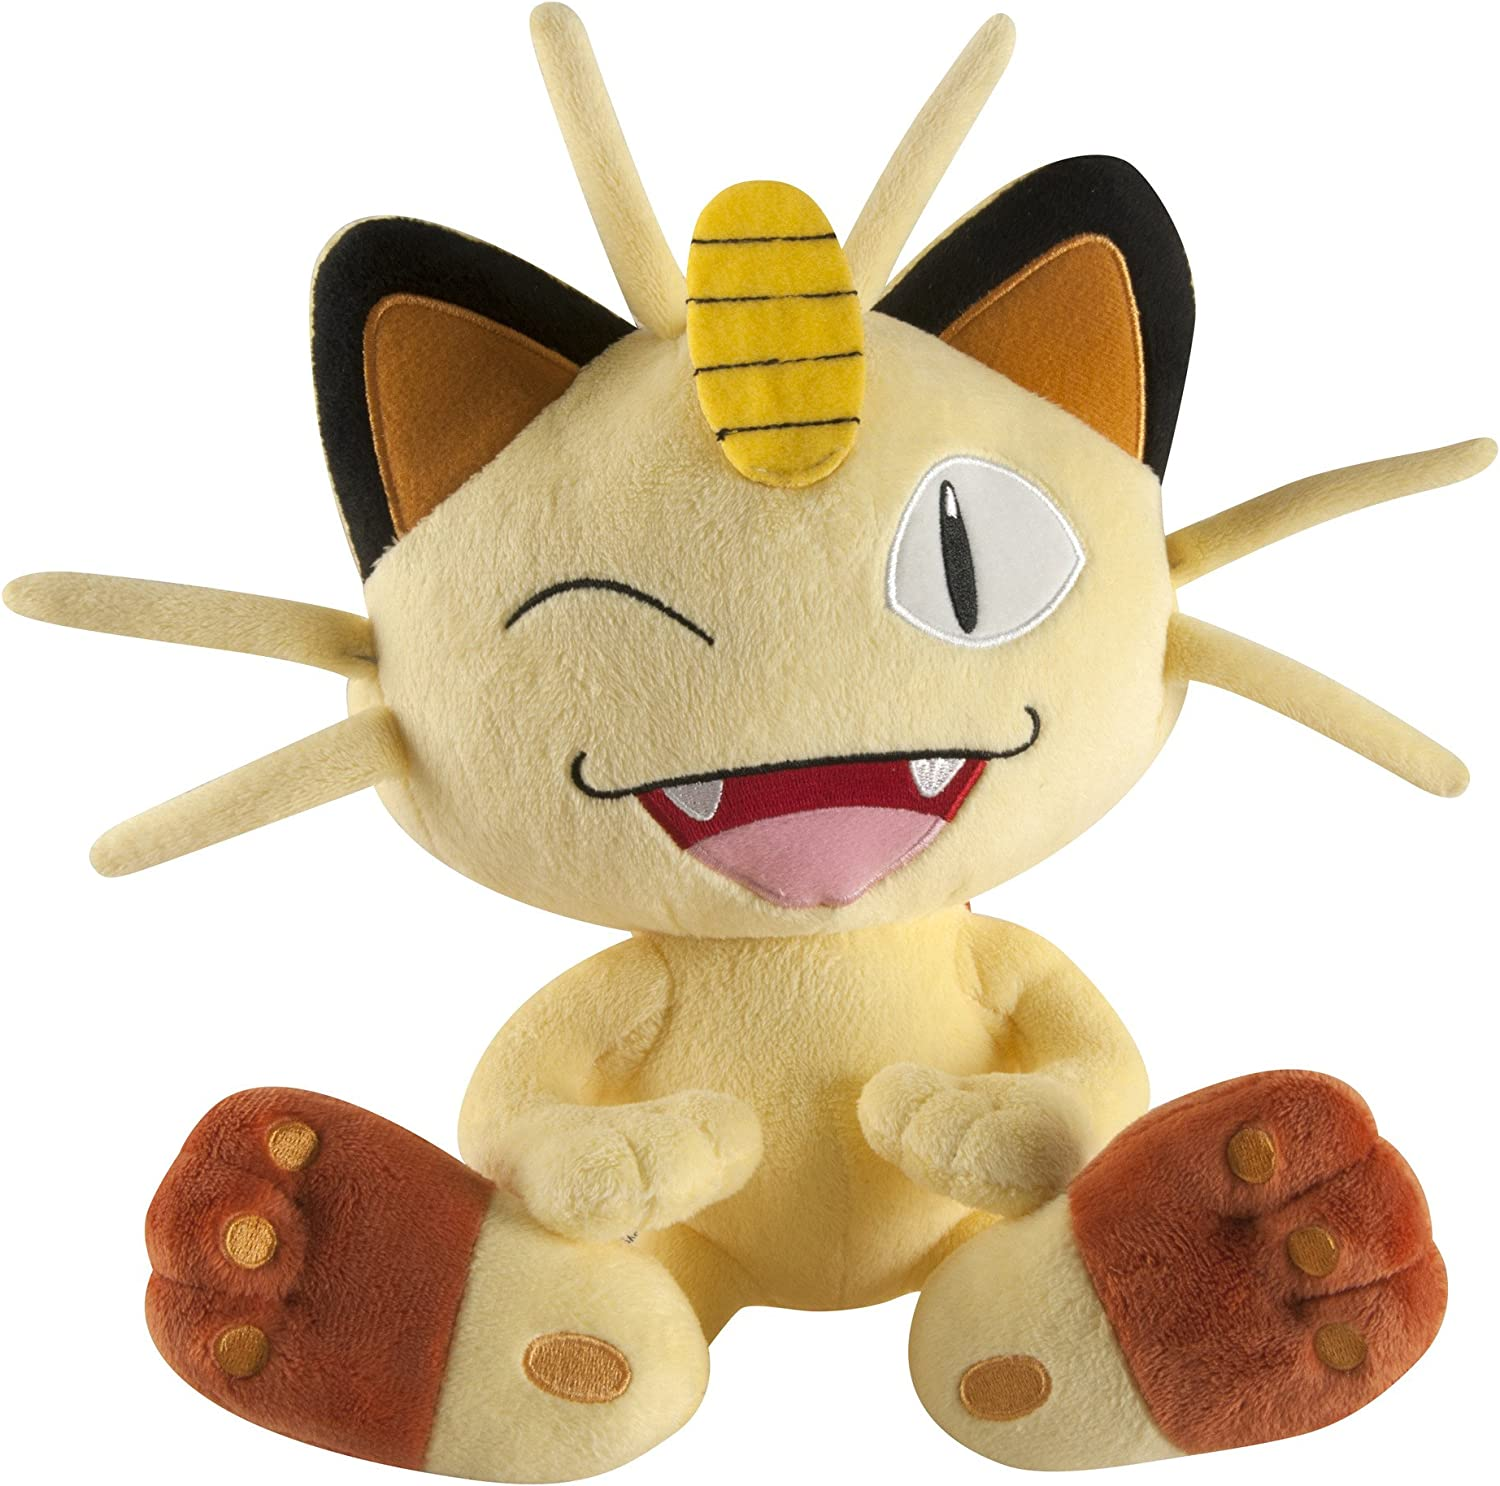 Pokemon 34984A2 Large Plush Meowth